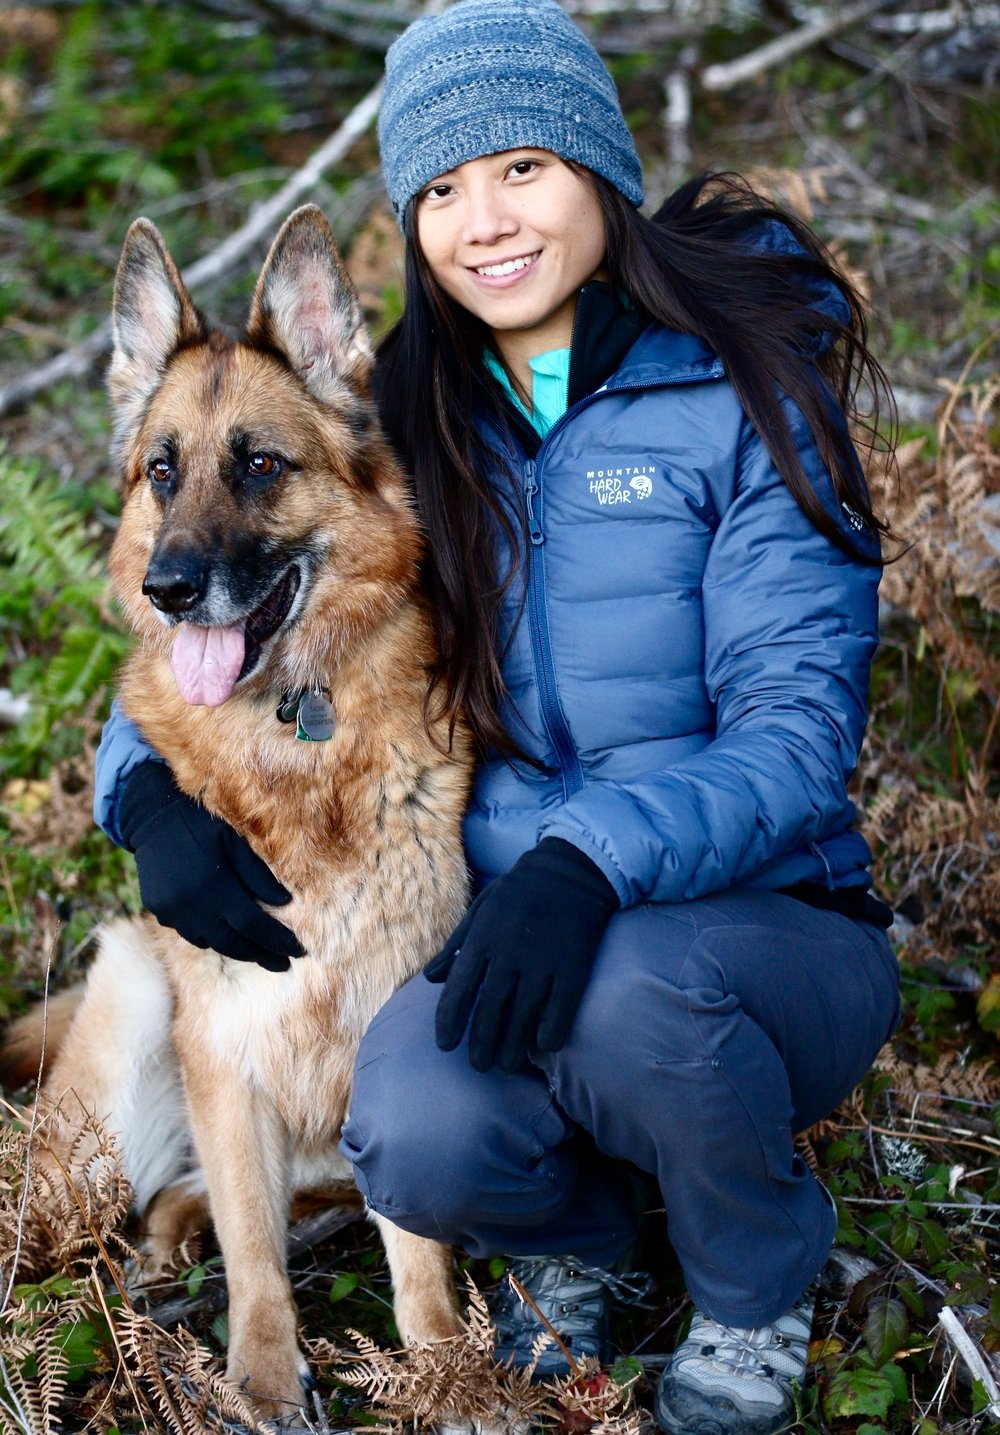 Anchor and Pine Collective Founder, Helen Schuckers and one of her dogs, Sadie in the Tillamook State Forest, Oregon. Photo credit  Kelley Johnson .